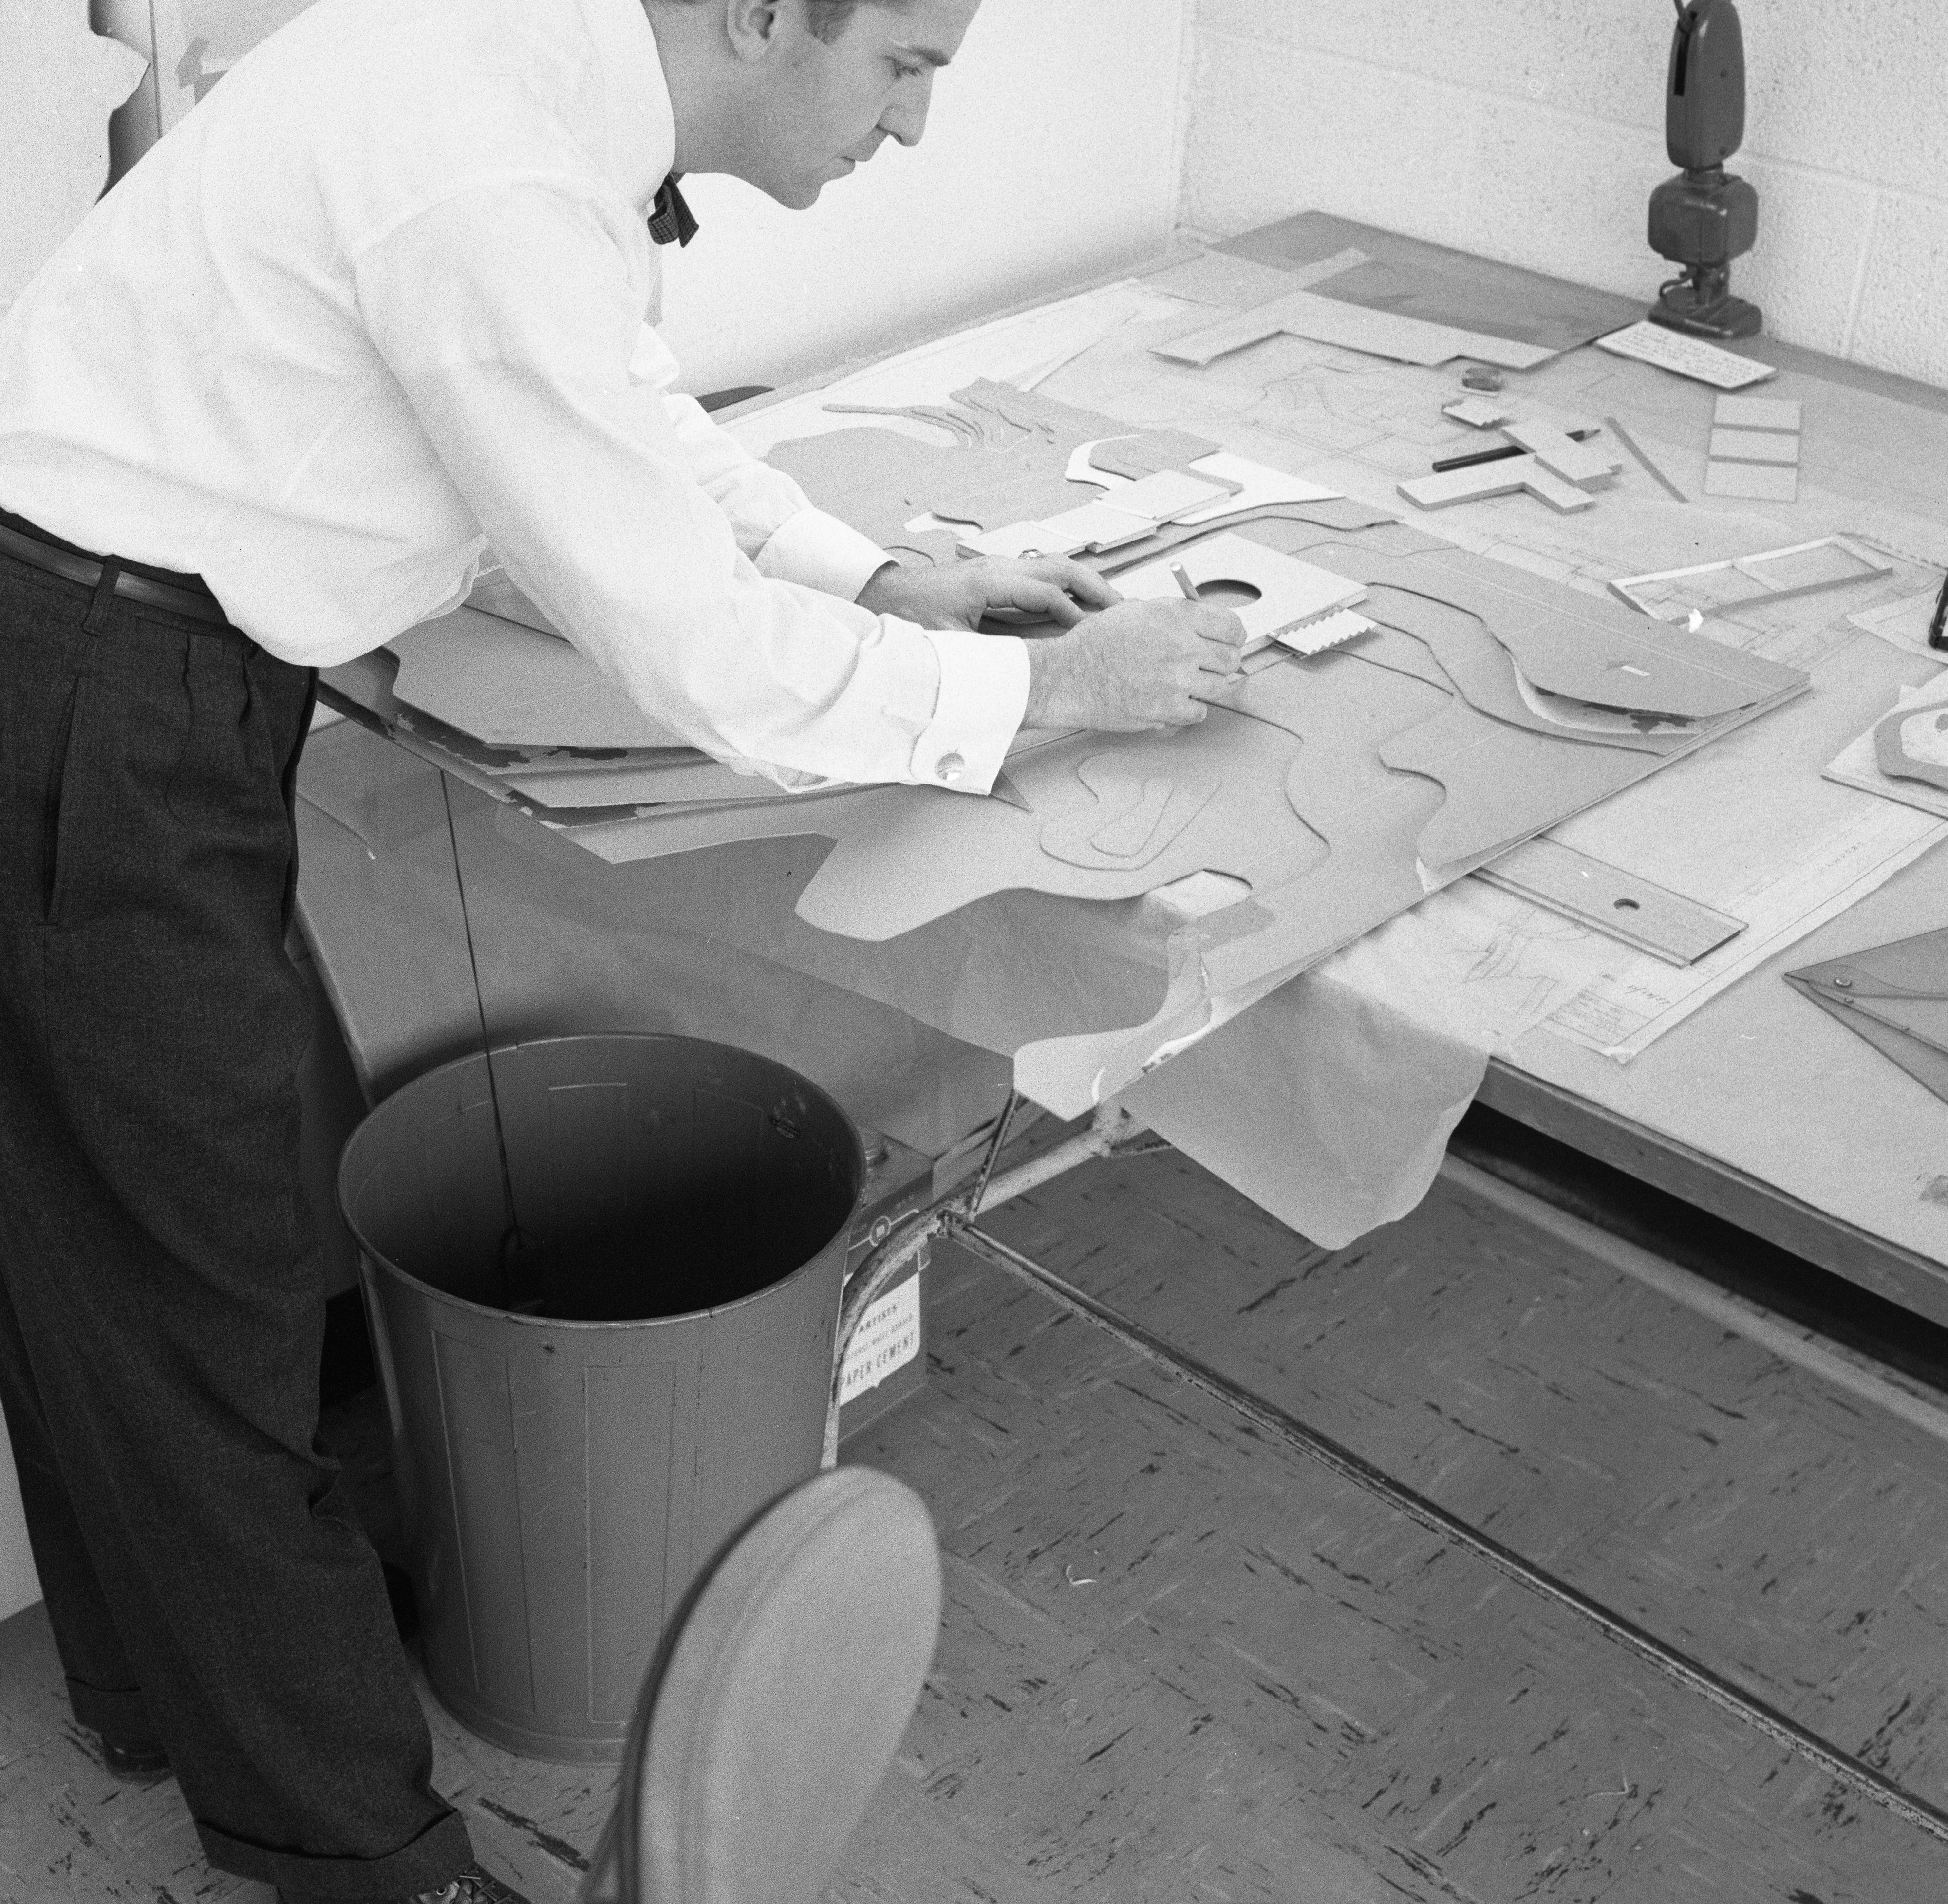 Richard Millman Works On Three-Dimensional Design For New Junior High School On Northwest Side of Ann Arbor, December 1957 image